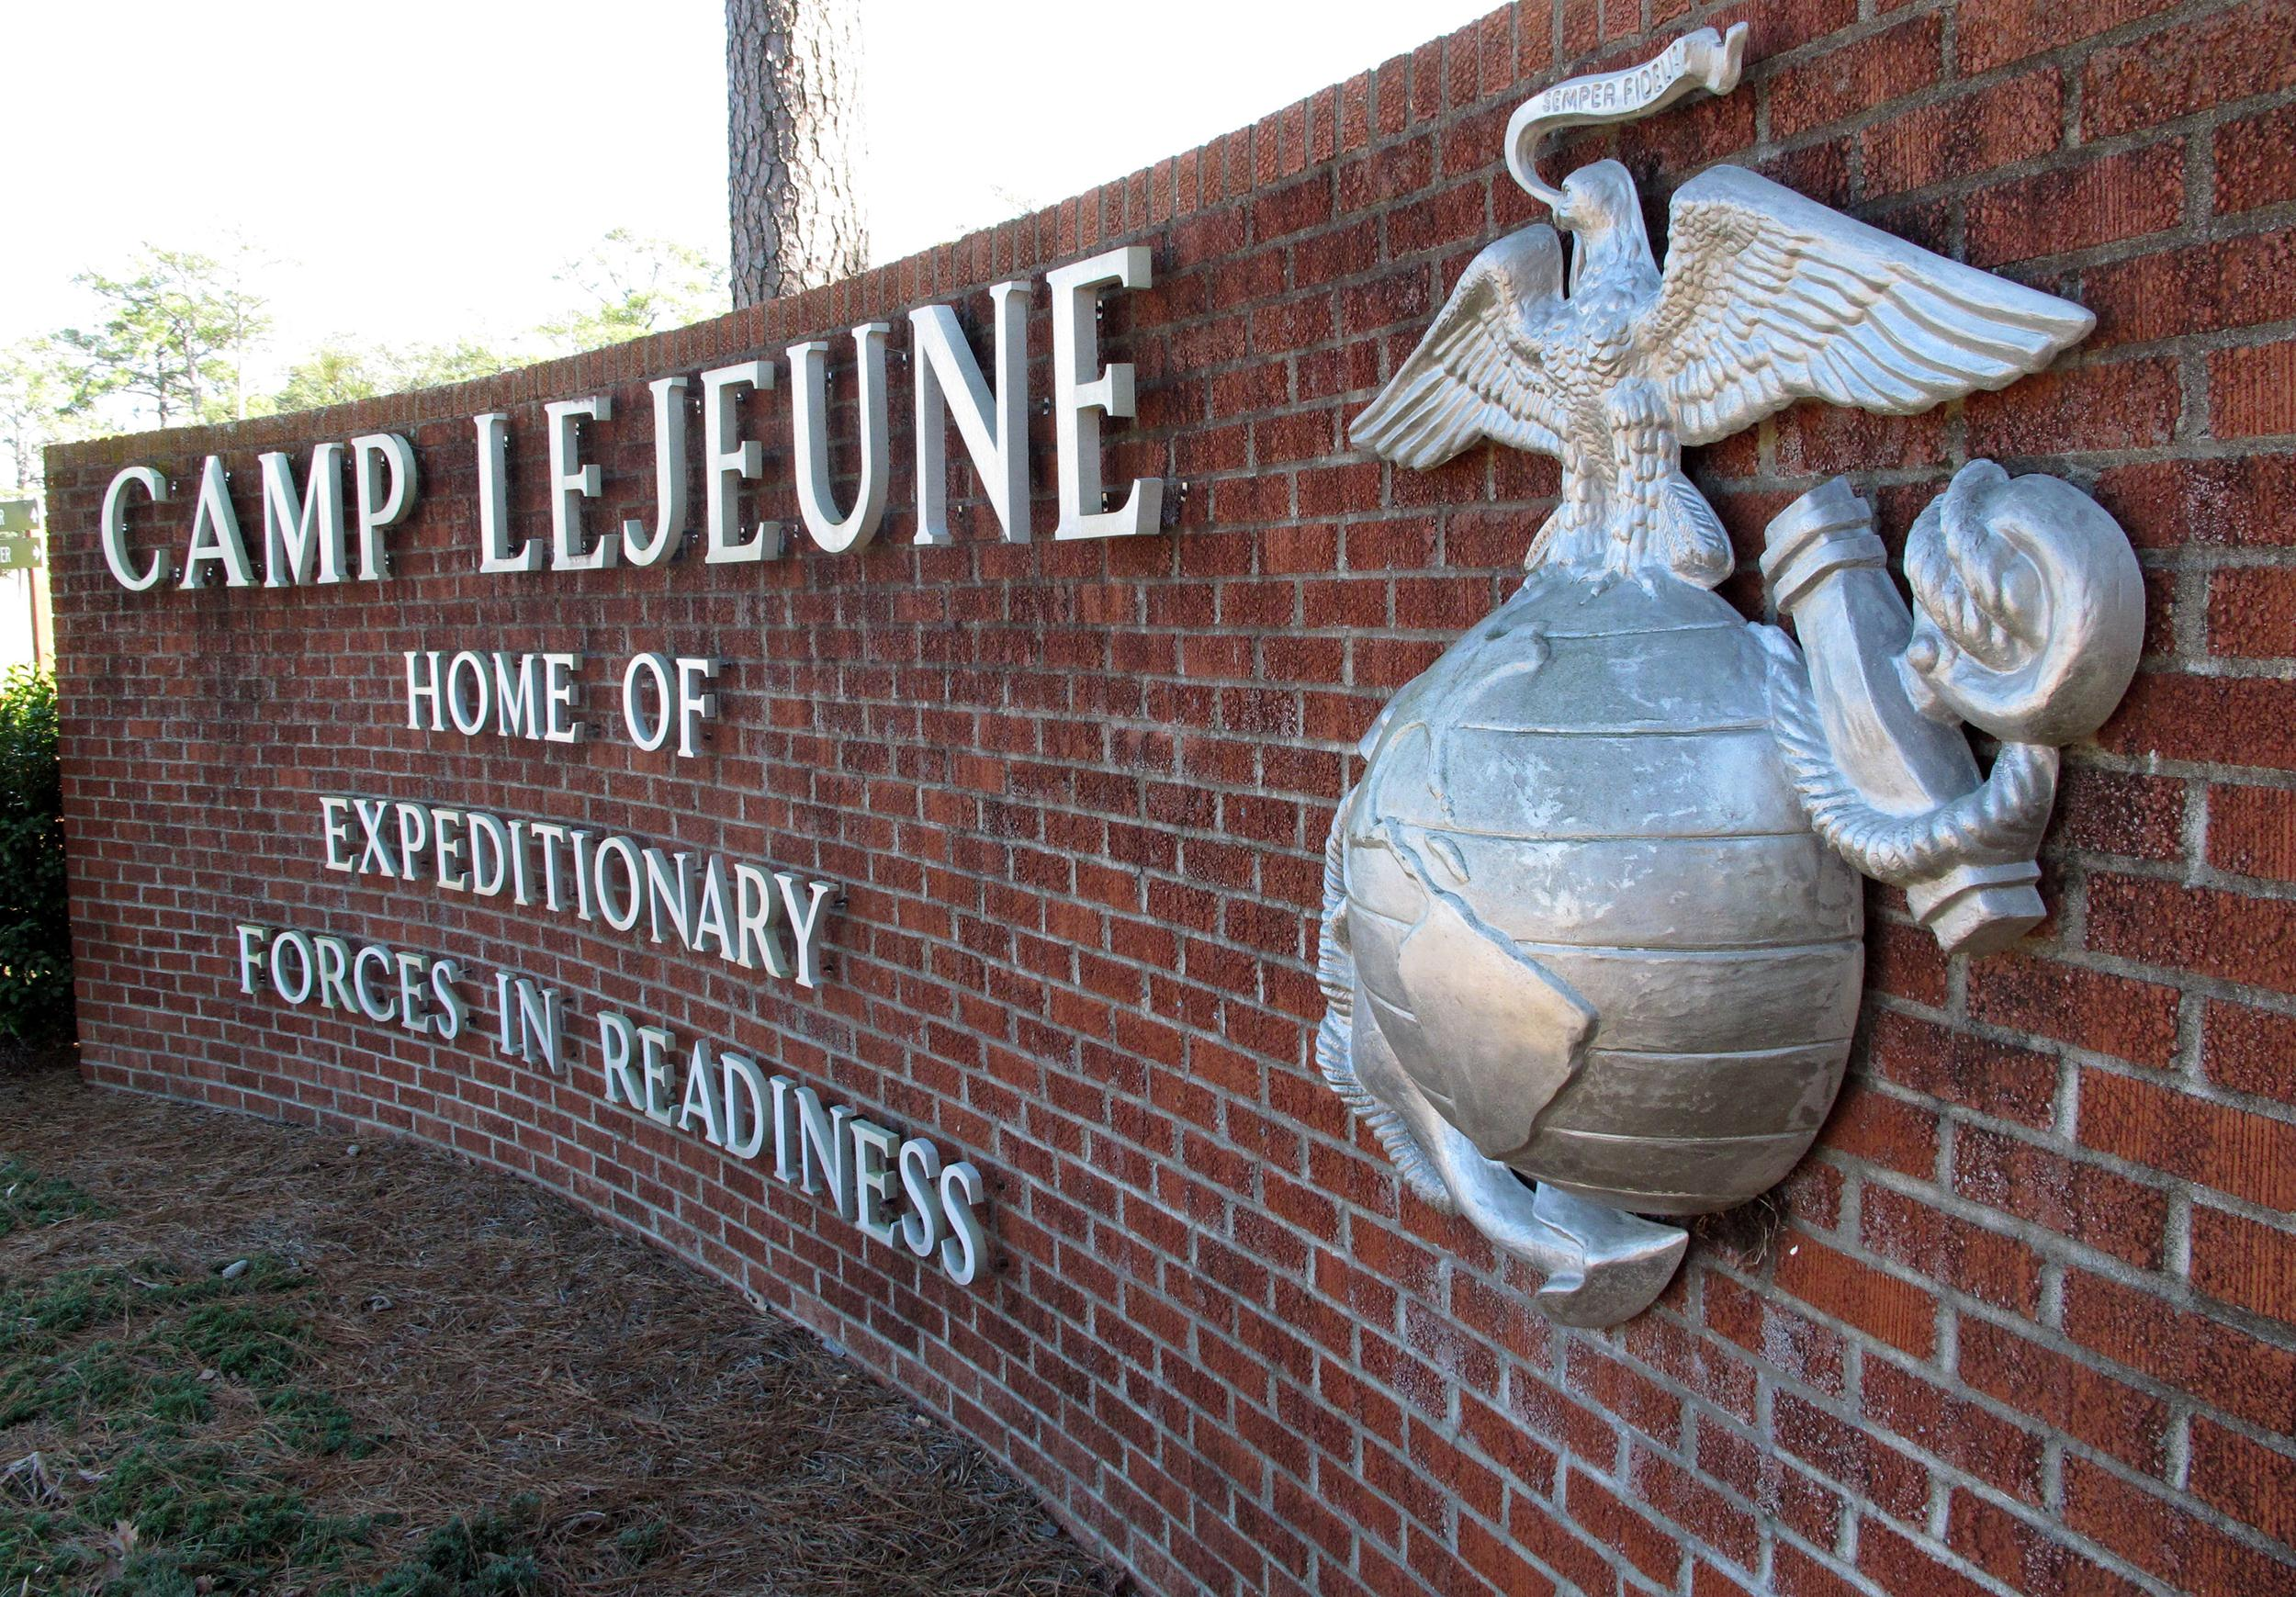 Image: A sign at the entrance to Camp Lejeune, N.C.